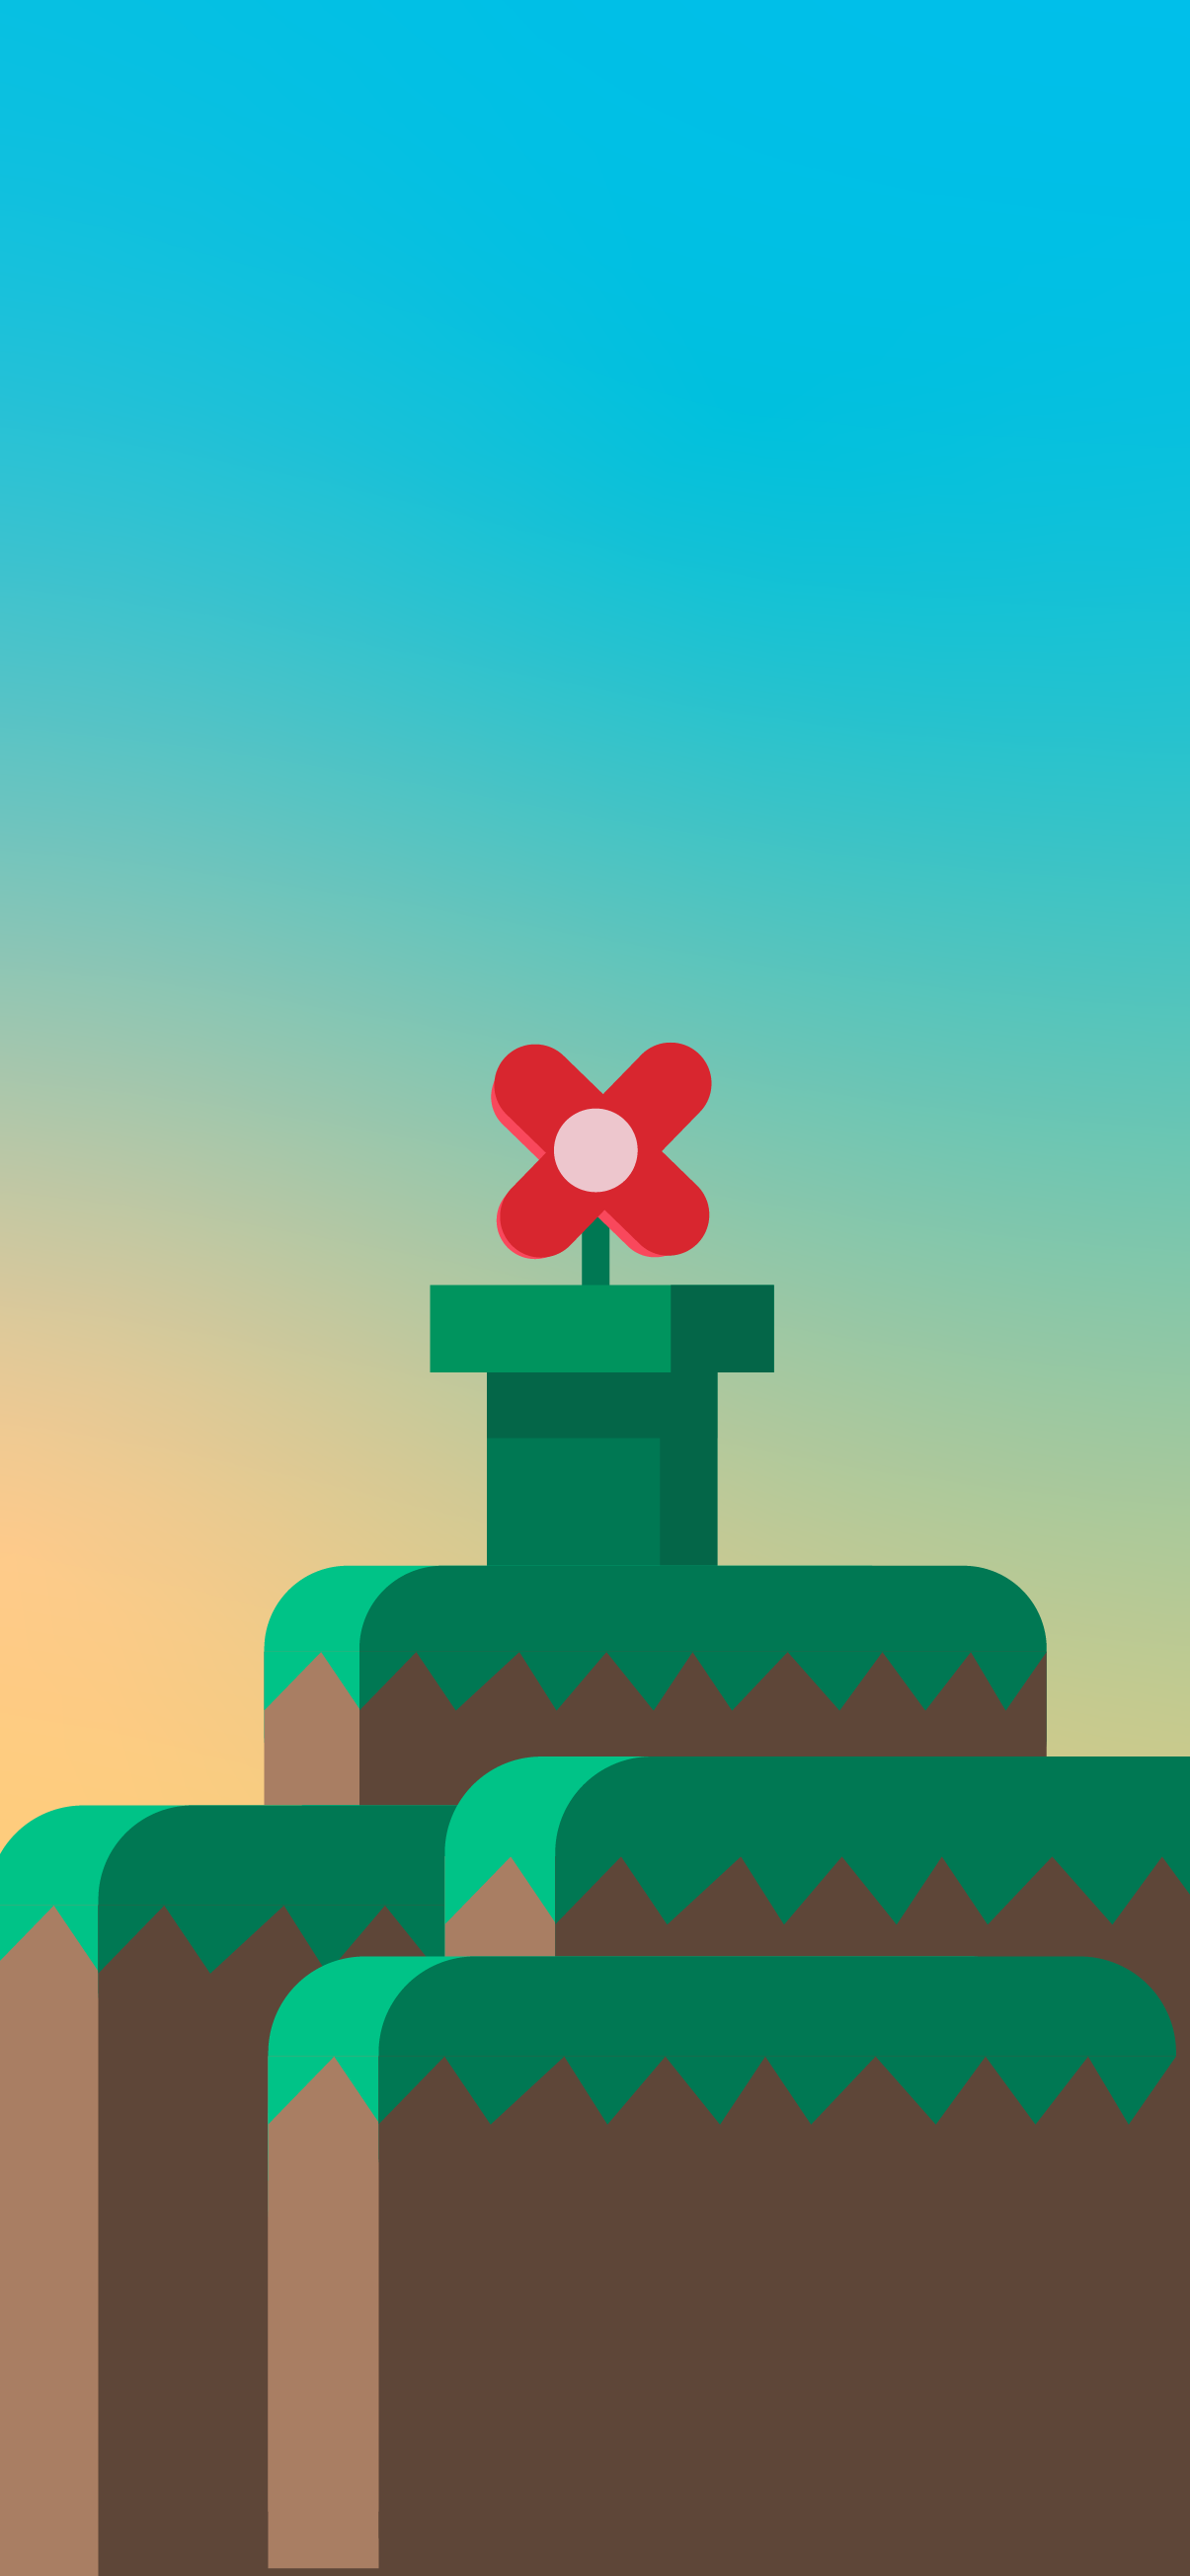 iphone-wallpaper-hd-mario-bros-style